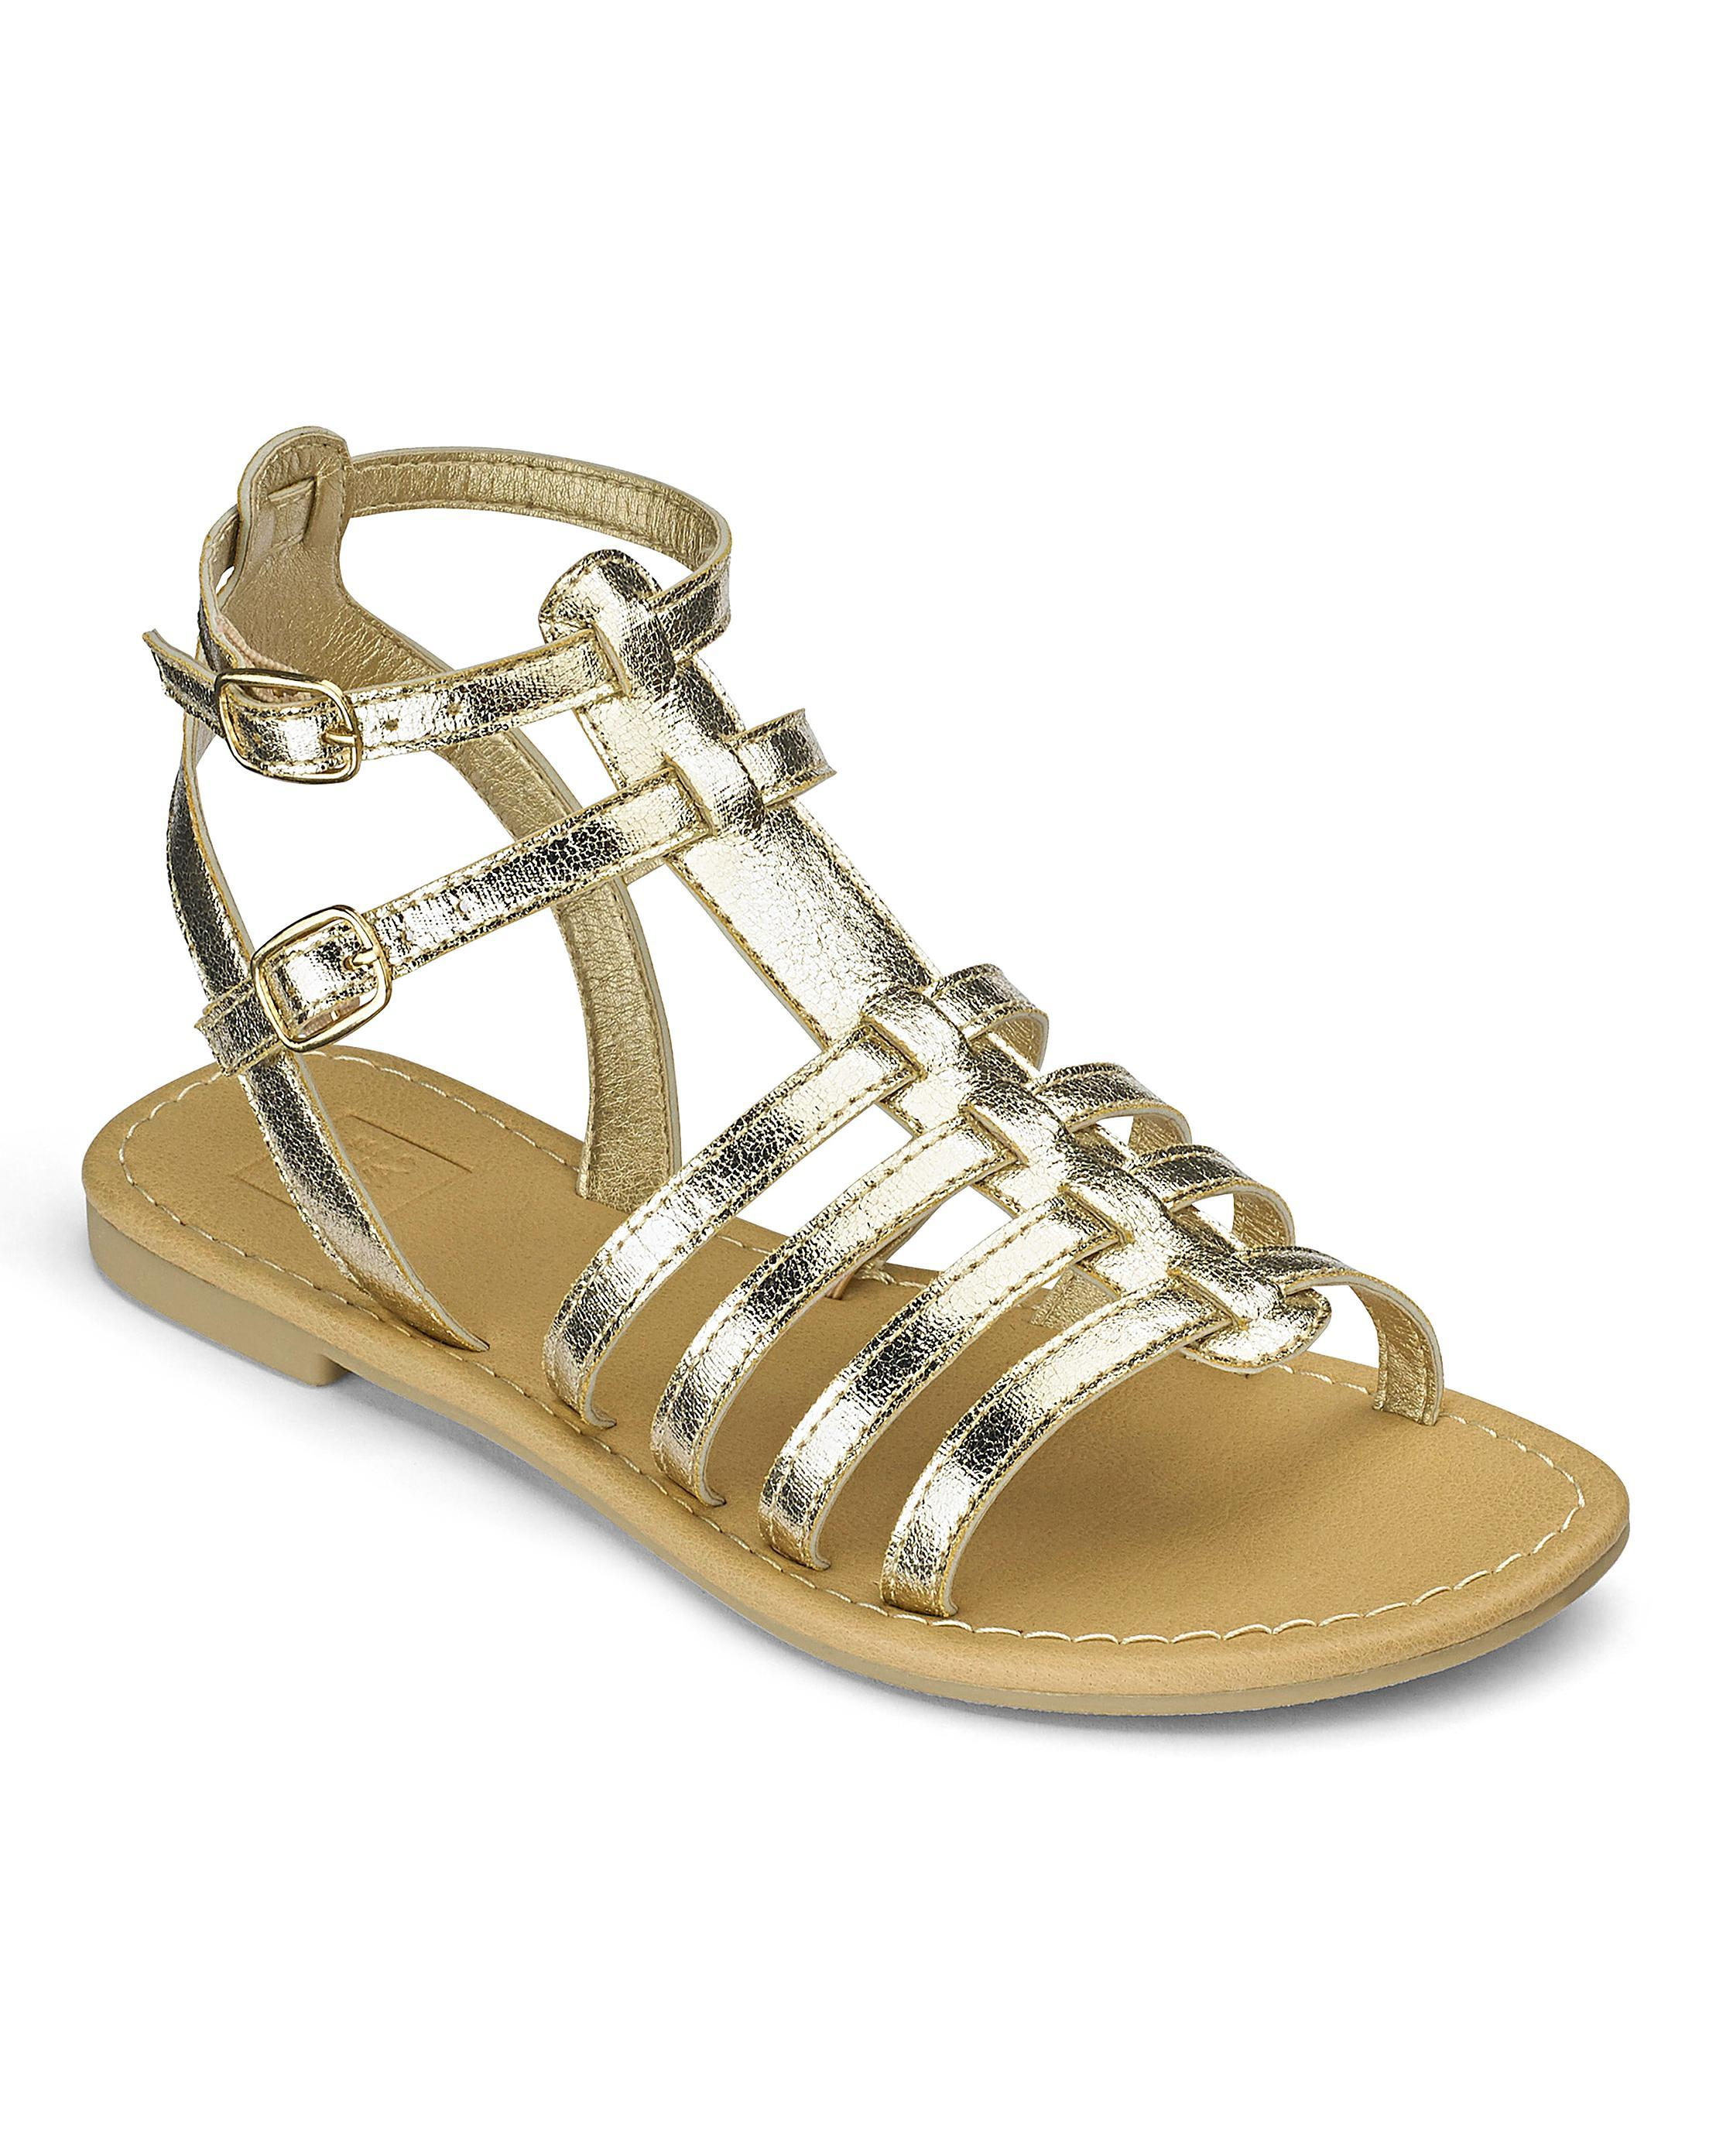 637681a92b7 Lyst - Simply Be Sole Diva Gladiator Sandals in Metallic